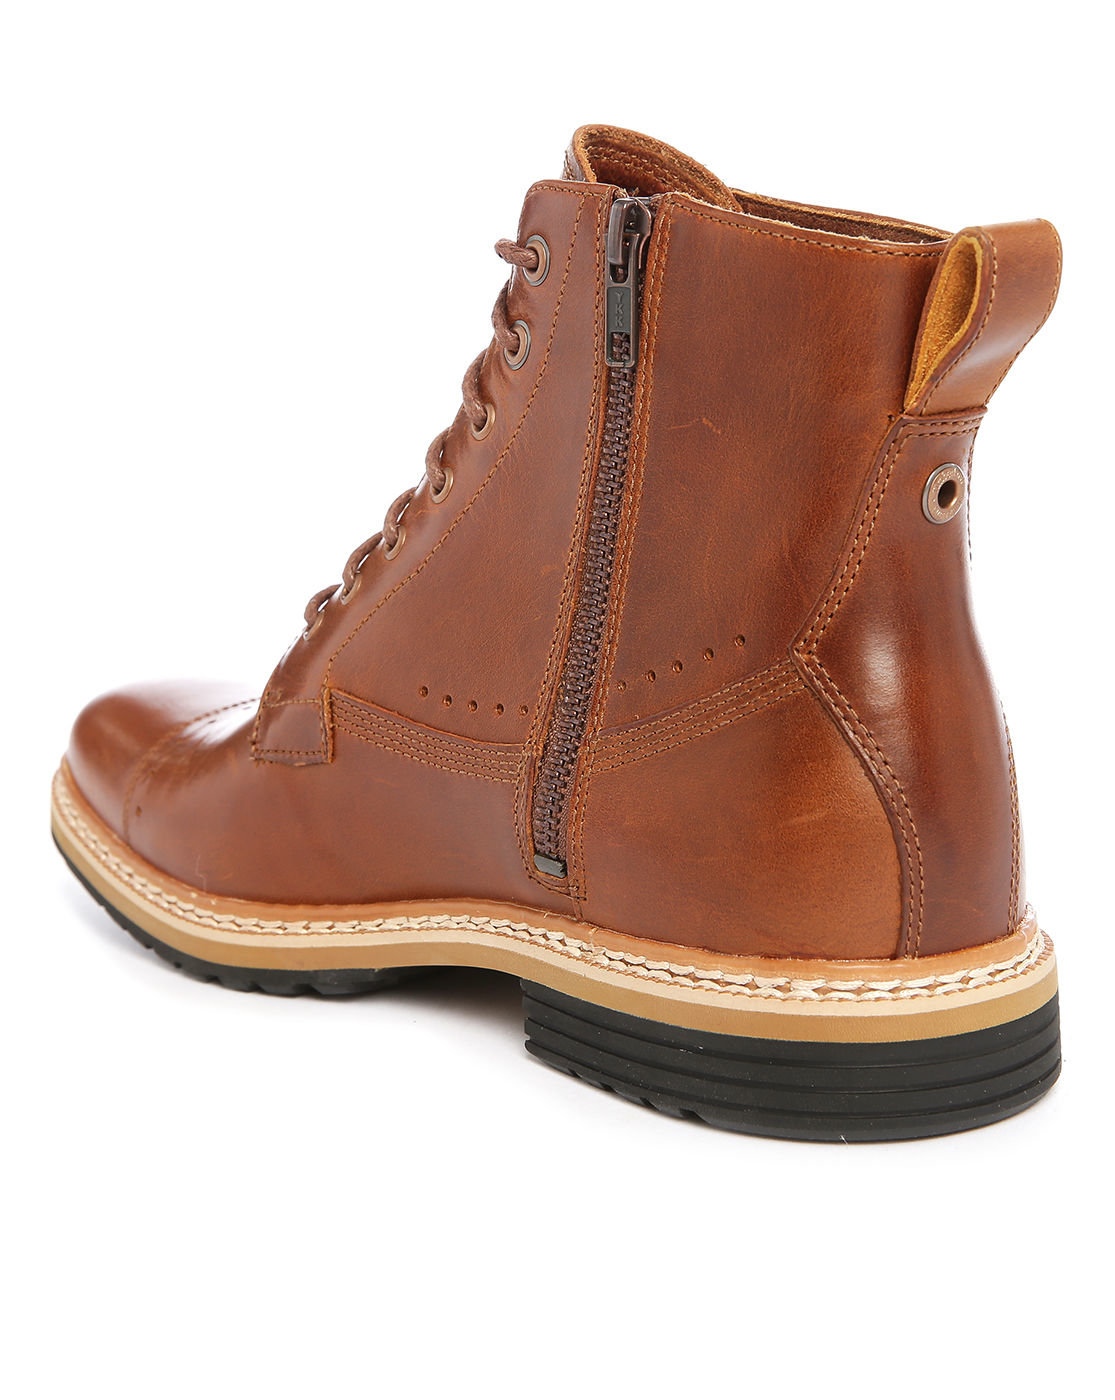 timberland brown leather boots with side zip in brown for